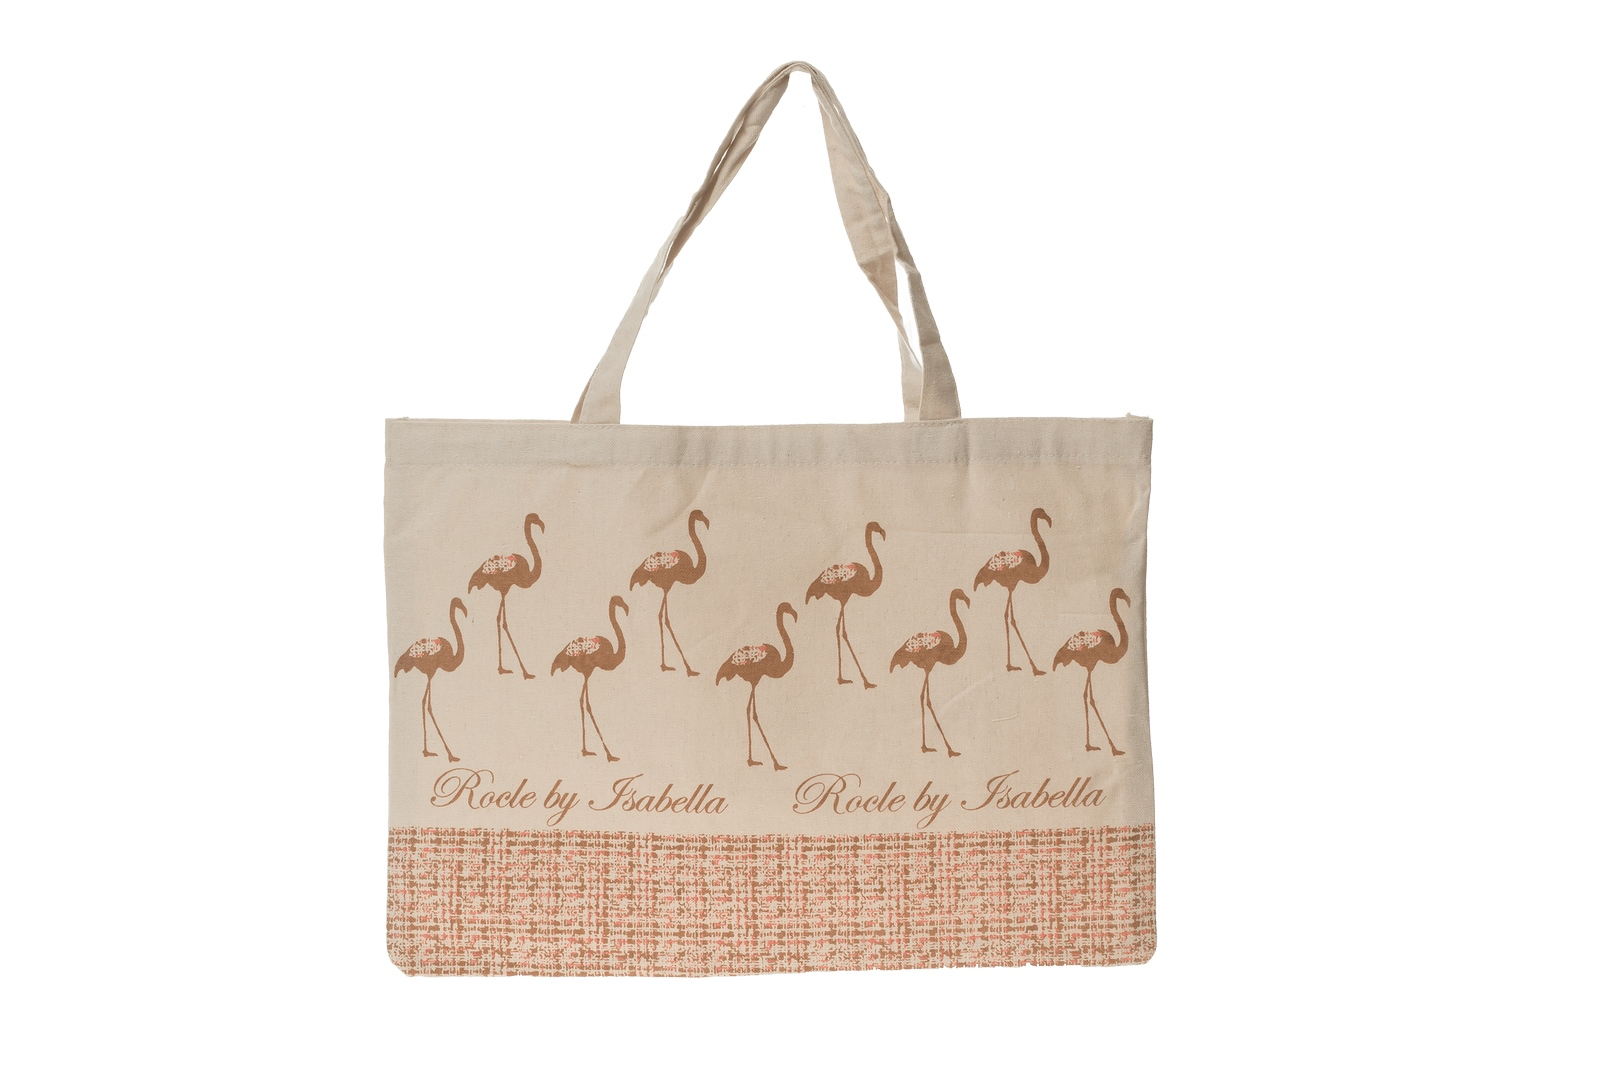 sac coton personnalisable Rocle by Isabella - Myprindis